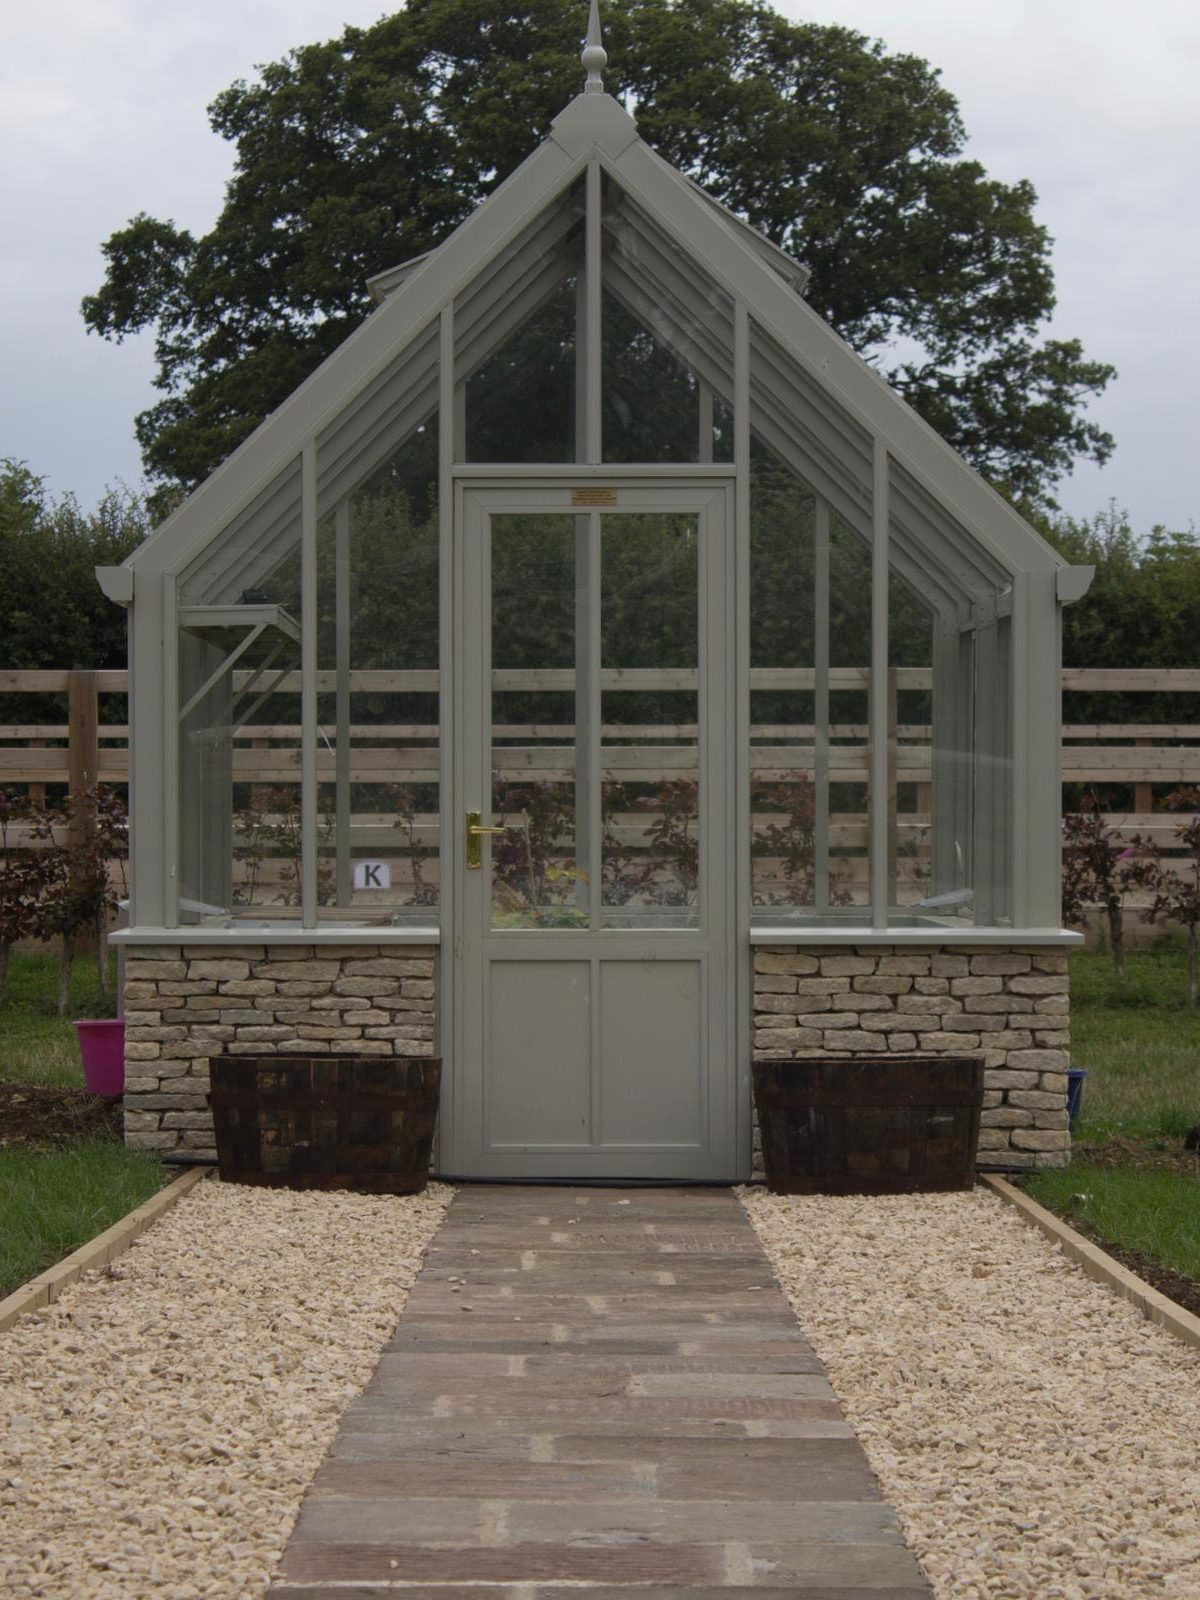 Garden Structures, Patio, Walling And Steps